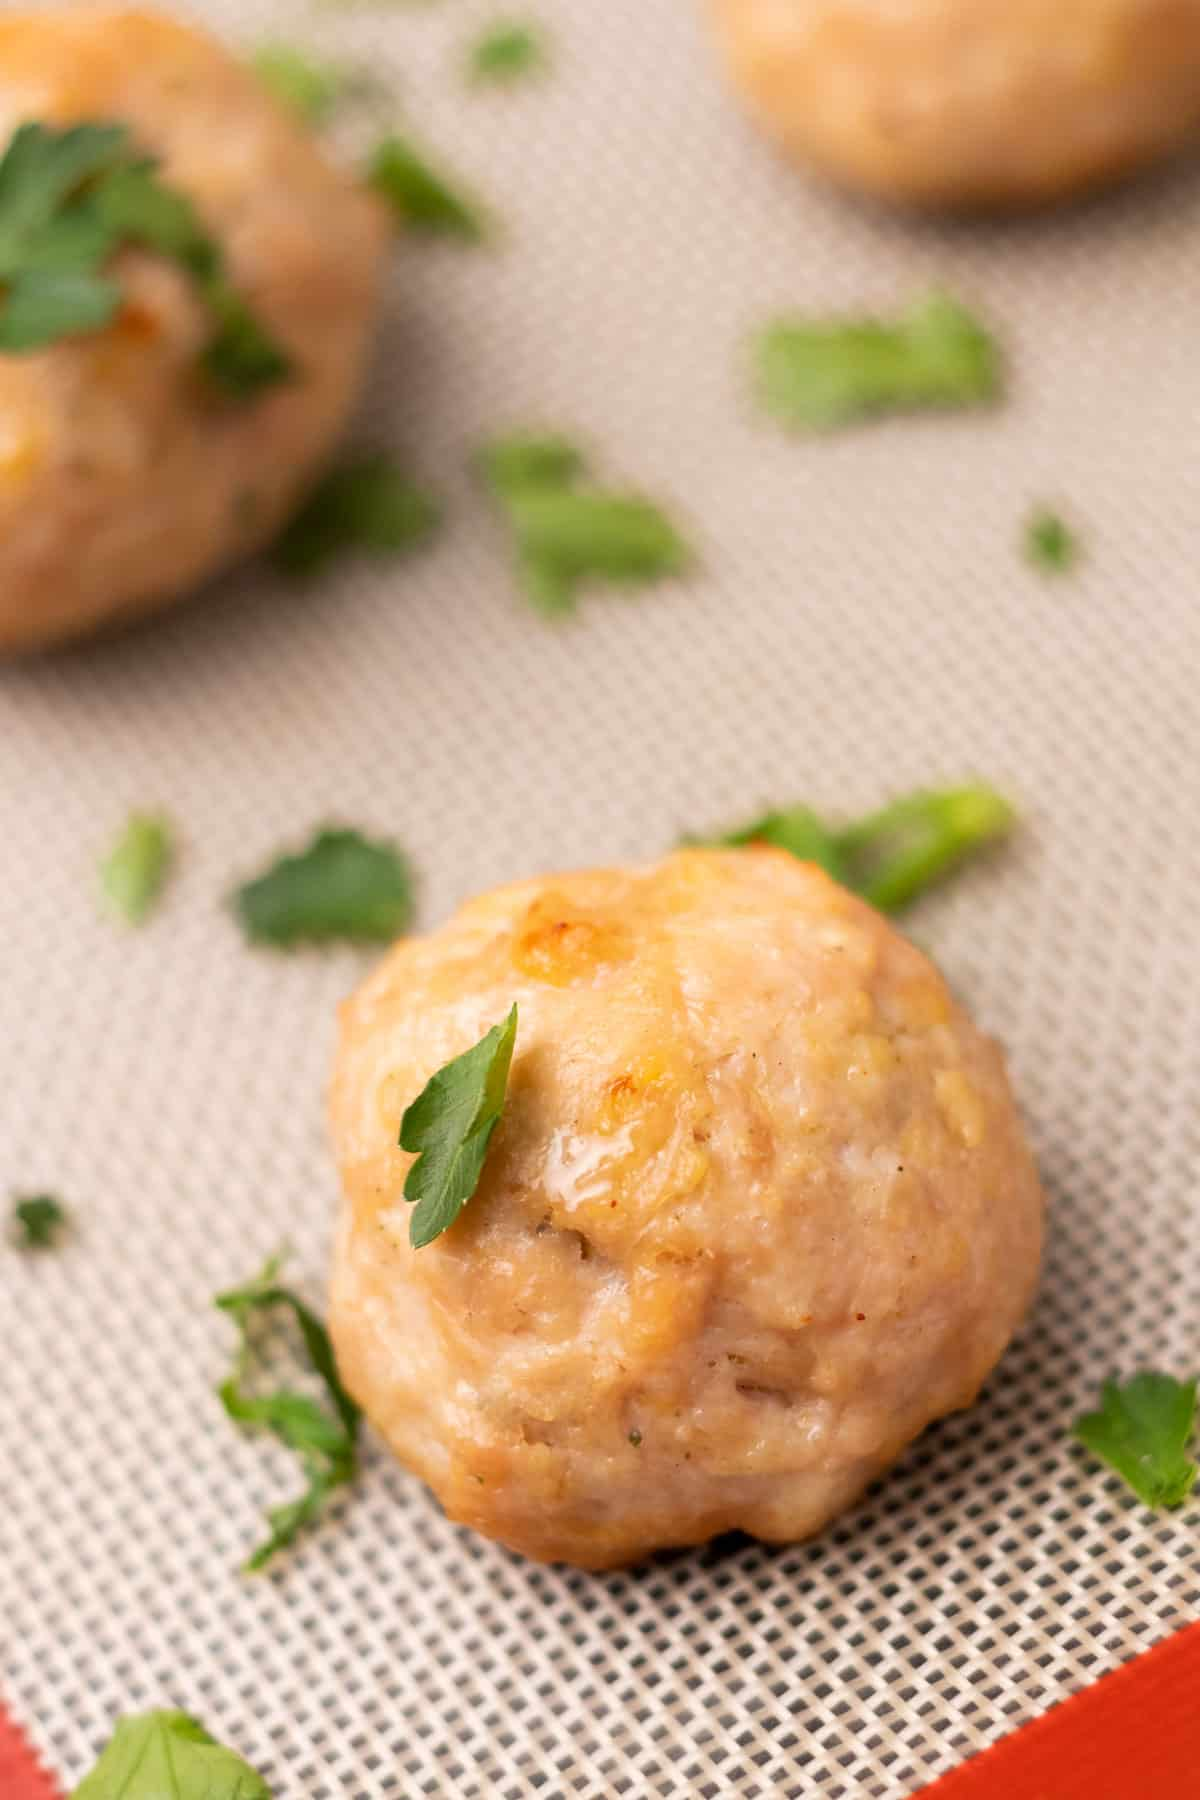 Close-up of meatball on the baking tray, garnished with parsley